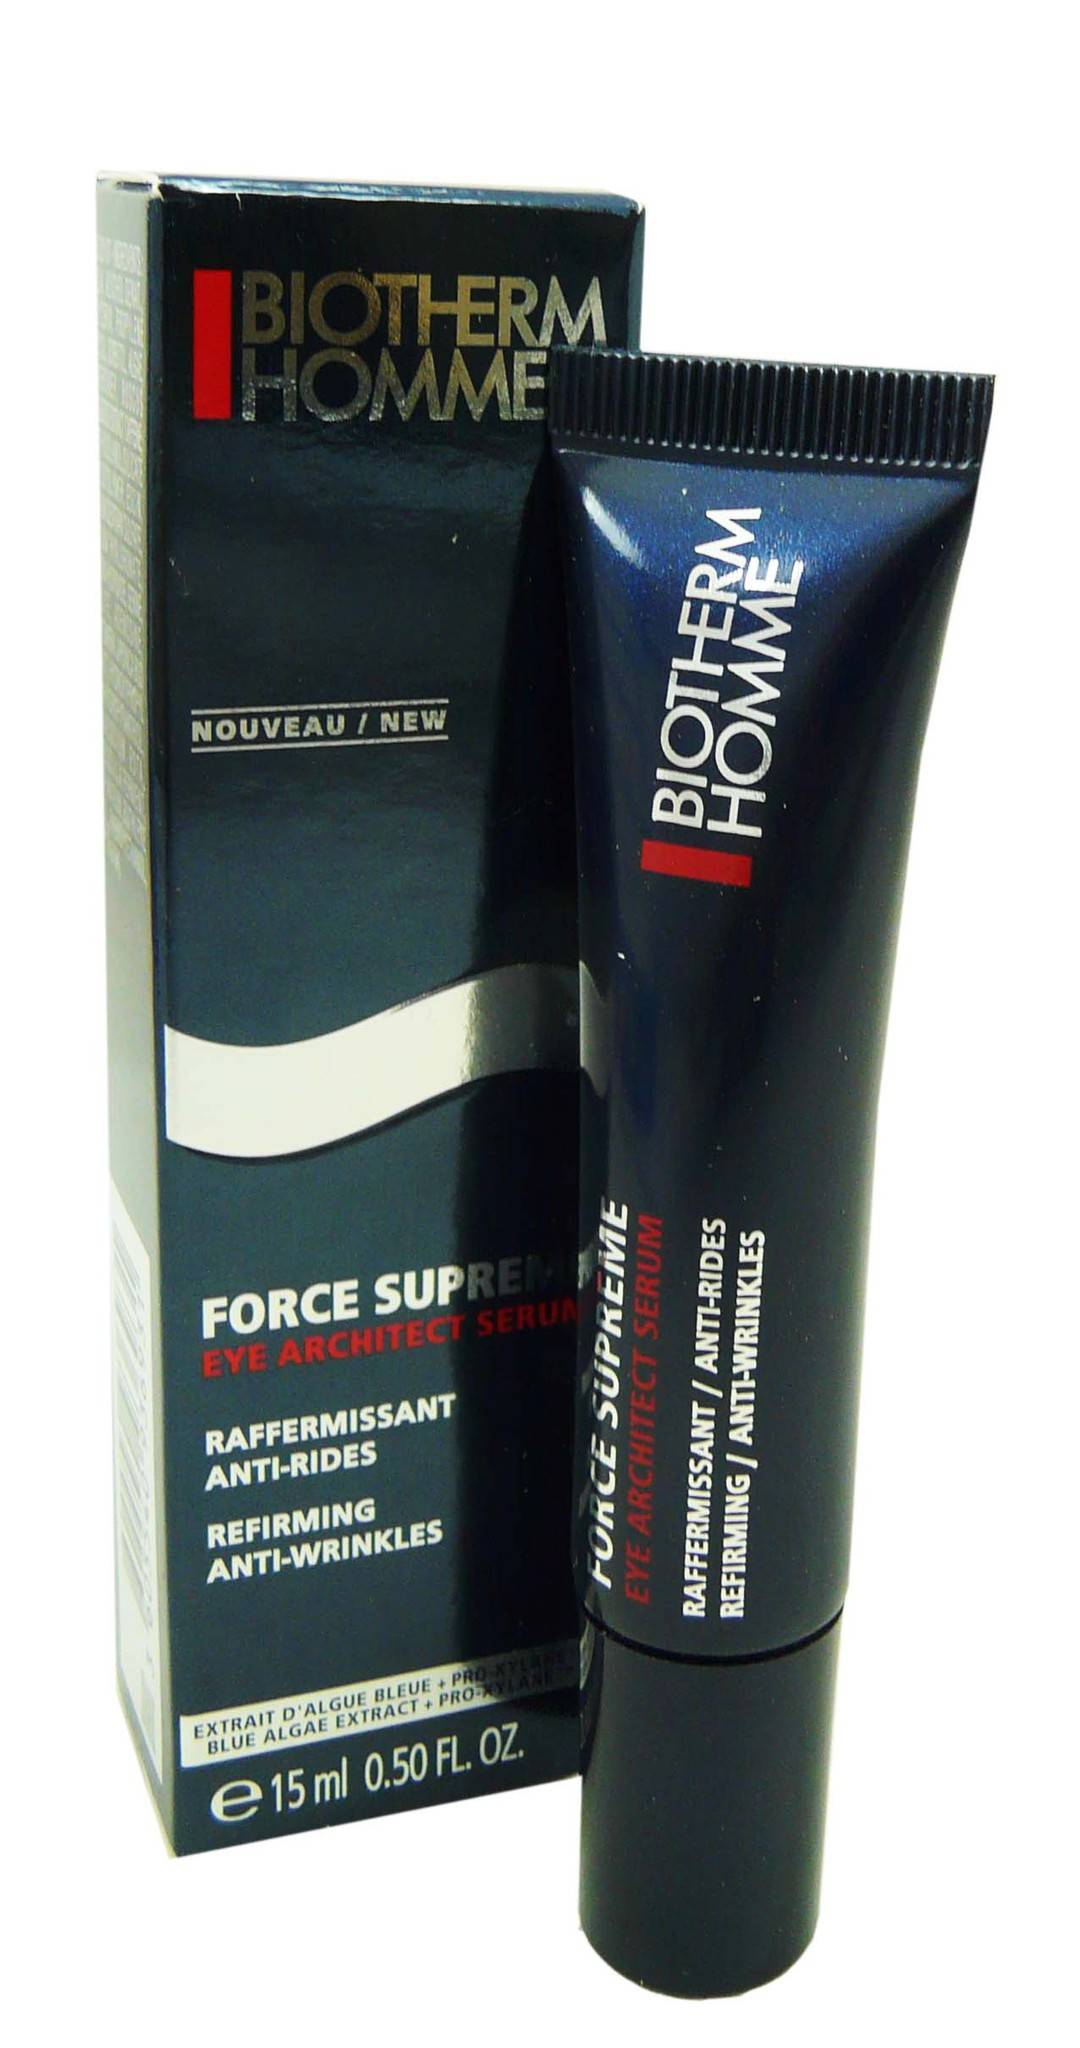 Biotherm homme force supreme anti rides yeux 15ml